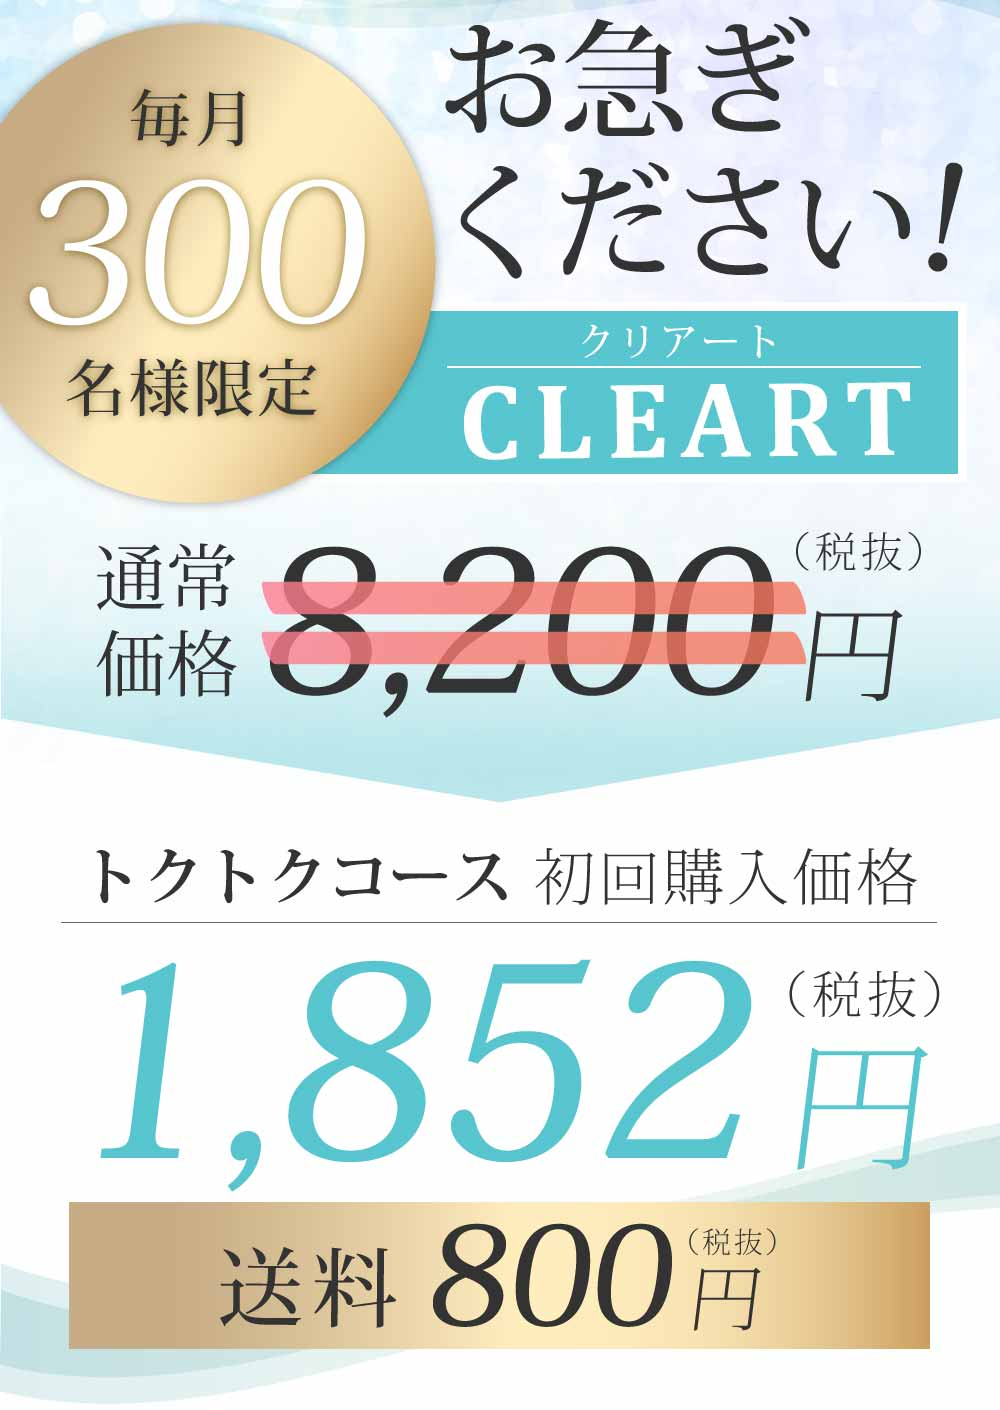 CLEARTトクトクコースは毎月300名様限定!お急ぎください!